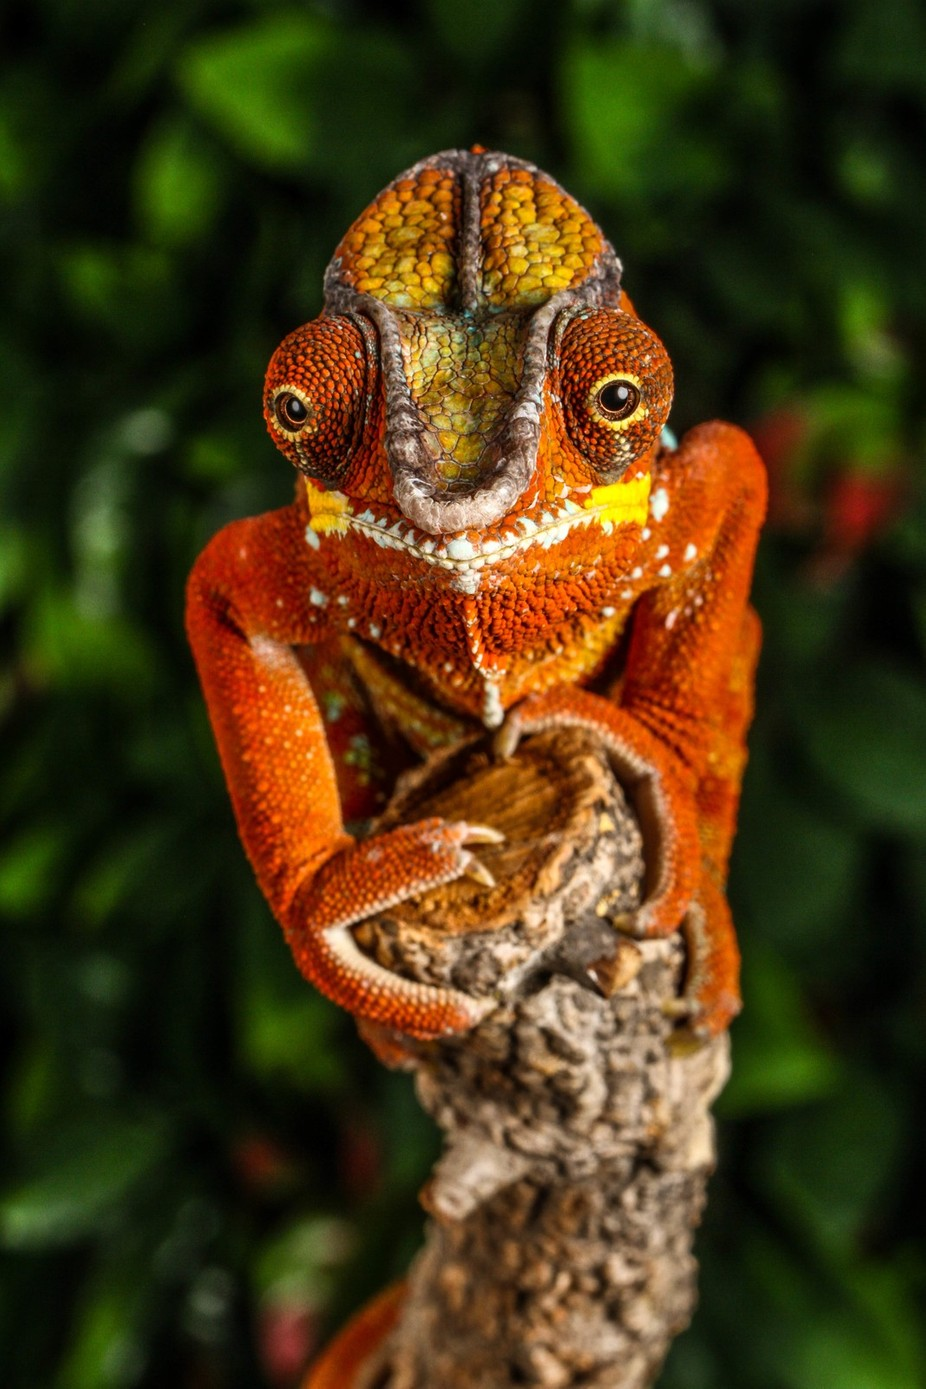 Rusty by garrychisholm - Reptiles Photo Contest